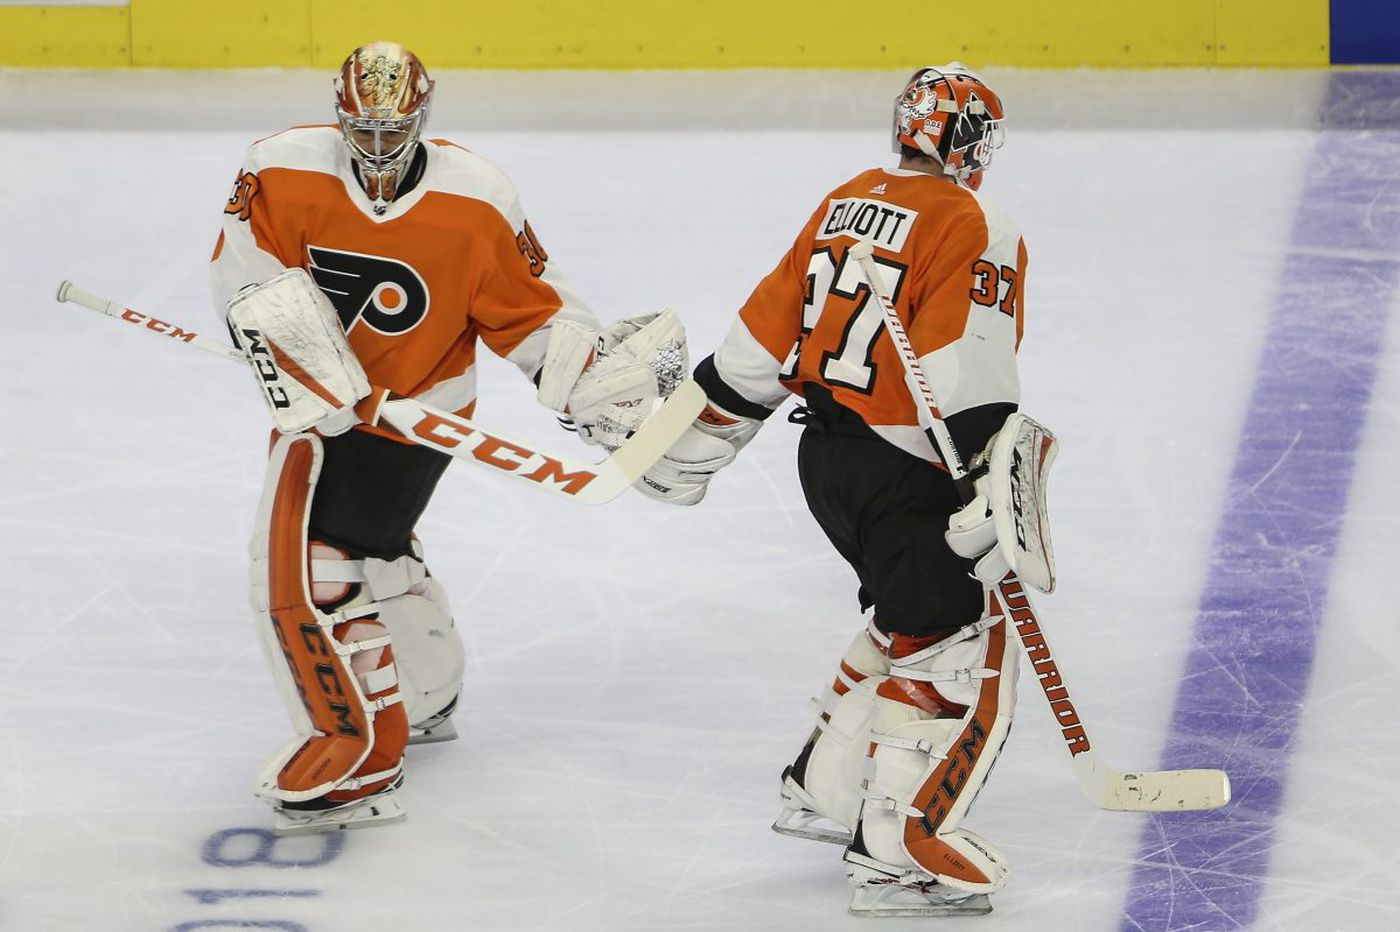 The Flyers' goalies aren't the answer for NHL playoff woes, but they're not the real problem, either | Mike Sielski